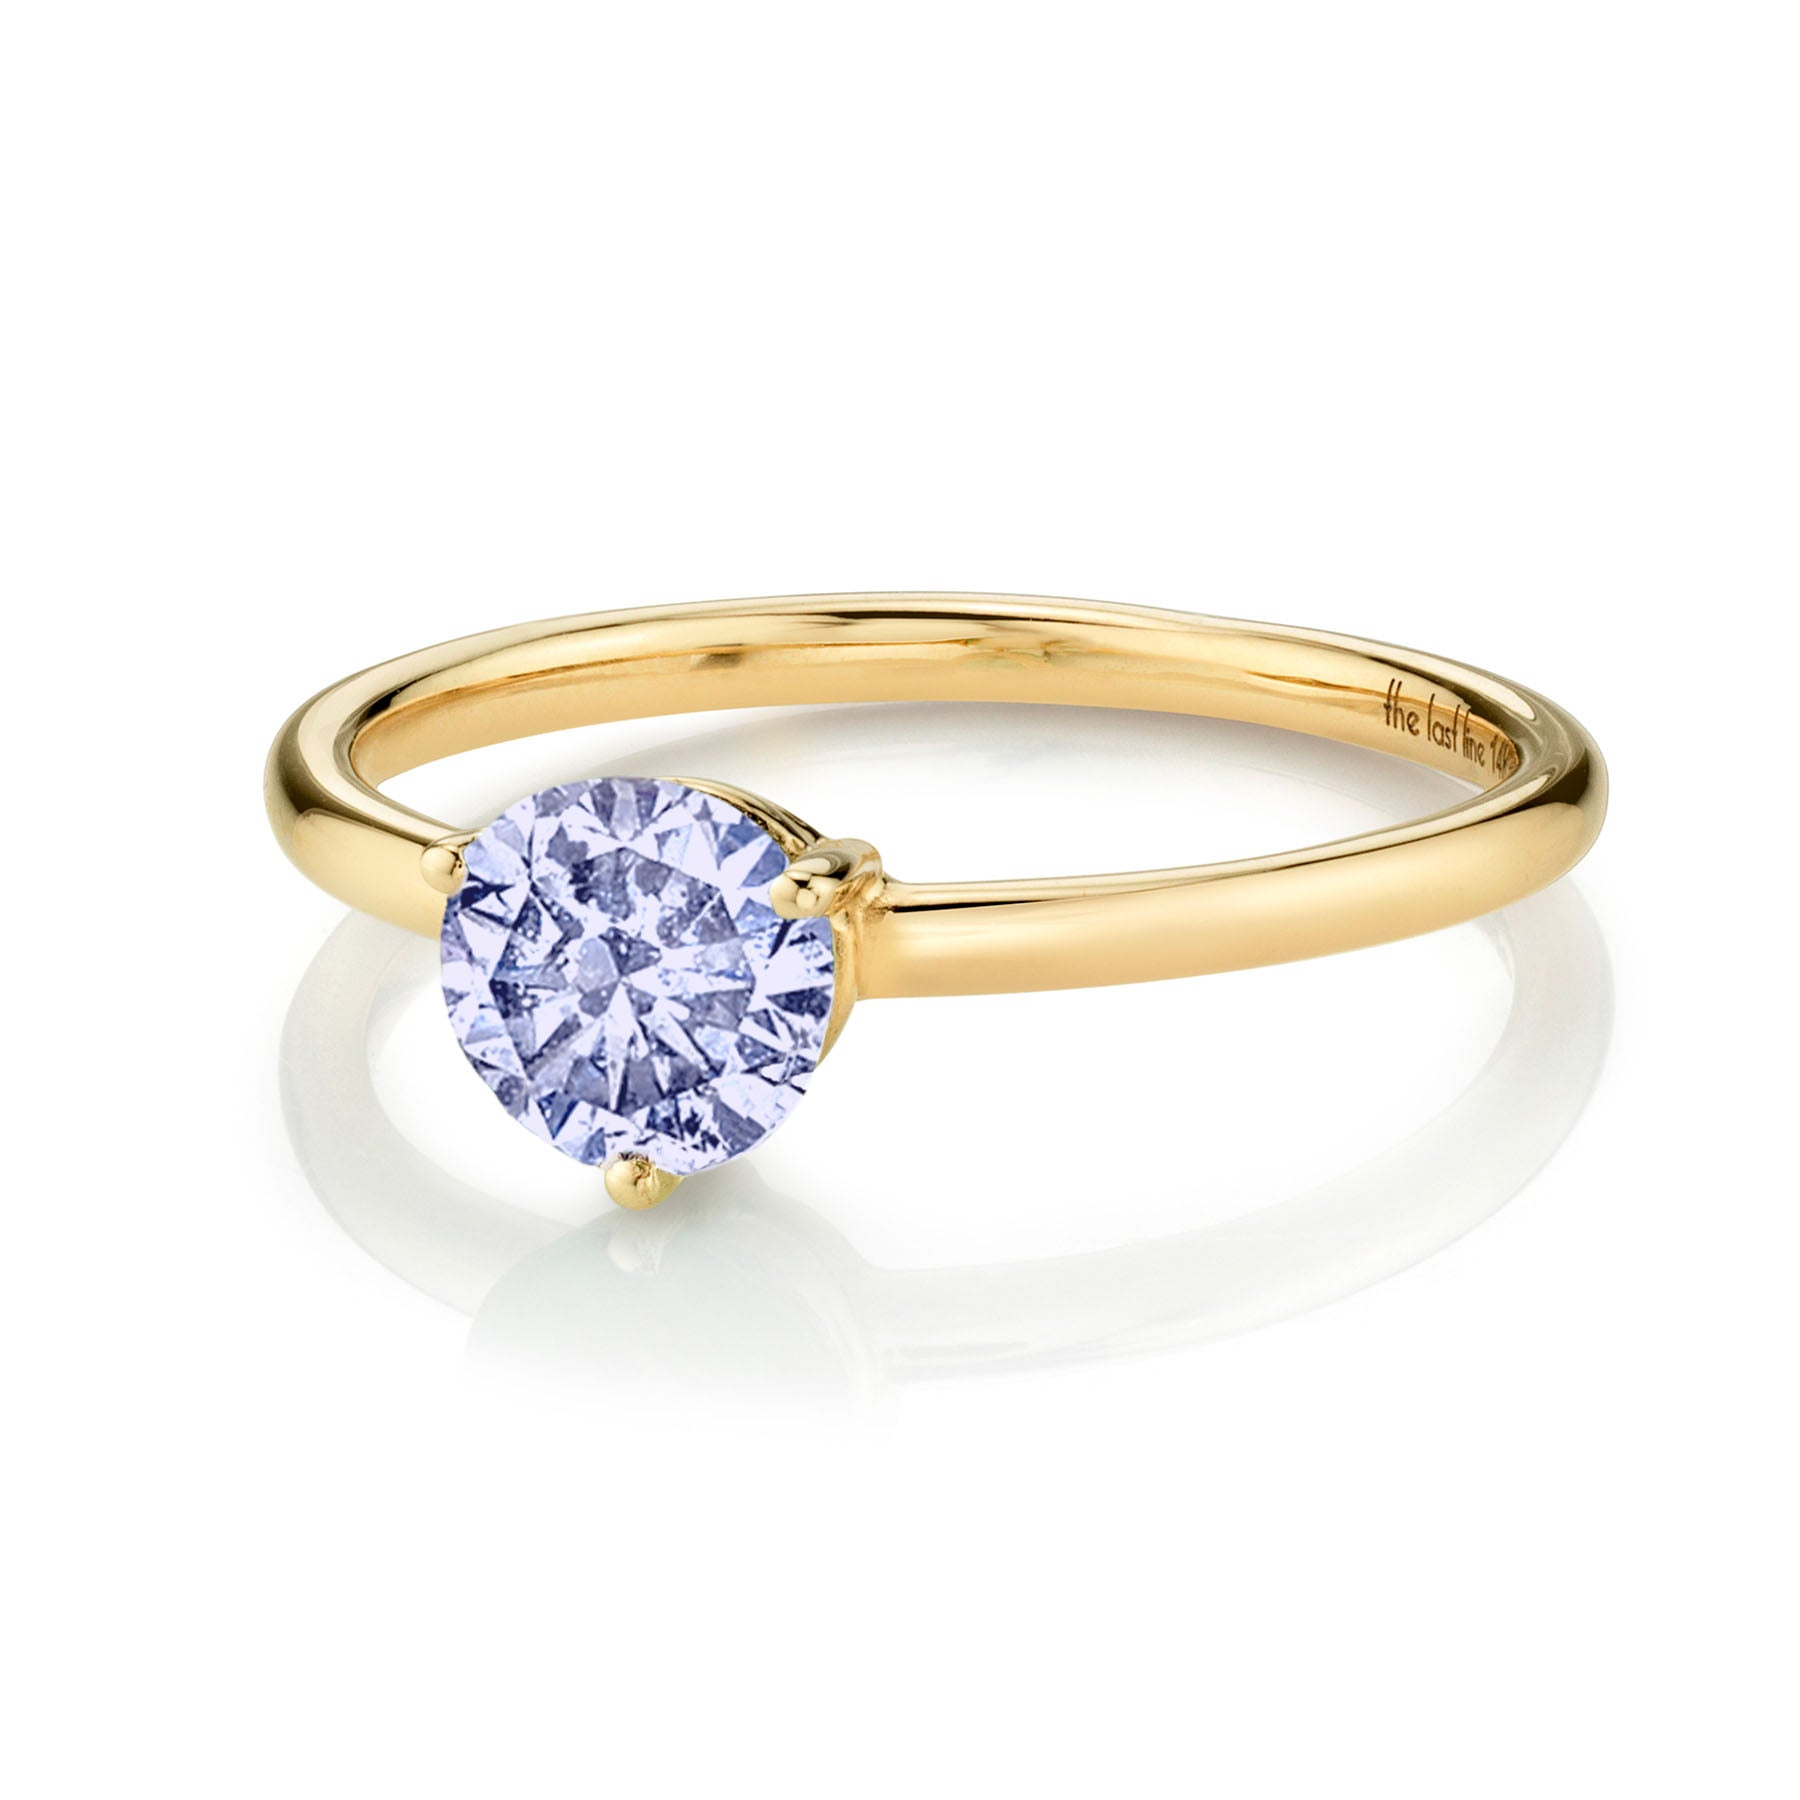 LARGE SOLITAIRE TANZANITE RING